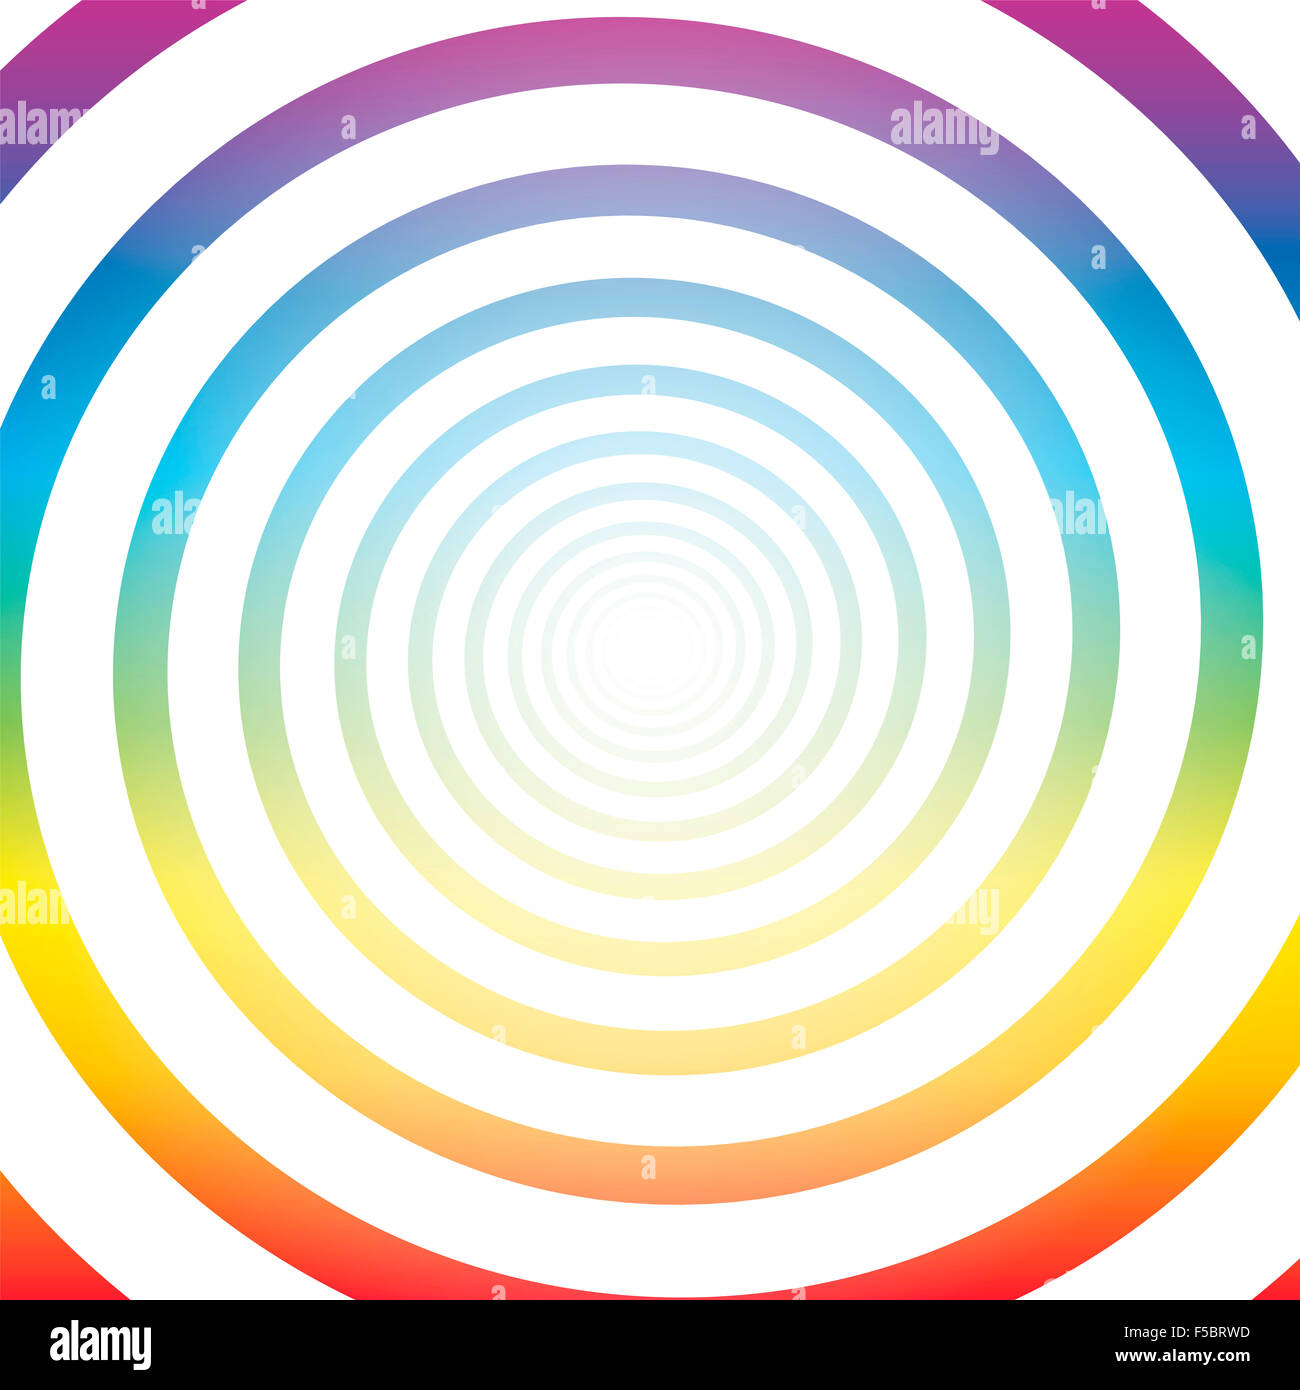 Spiral tunnel, rainbow colors, white shiny center, three-dimensional. - Stock Image